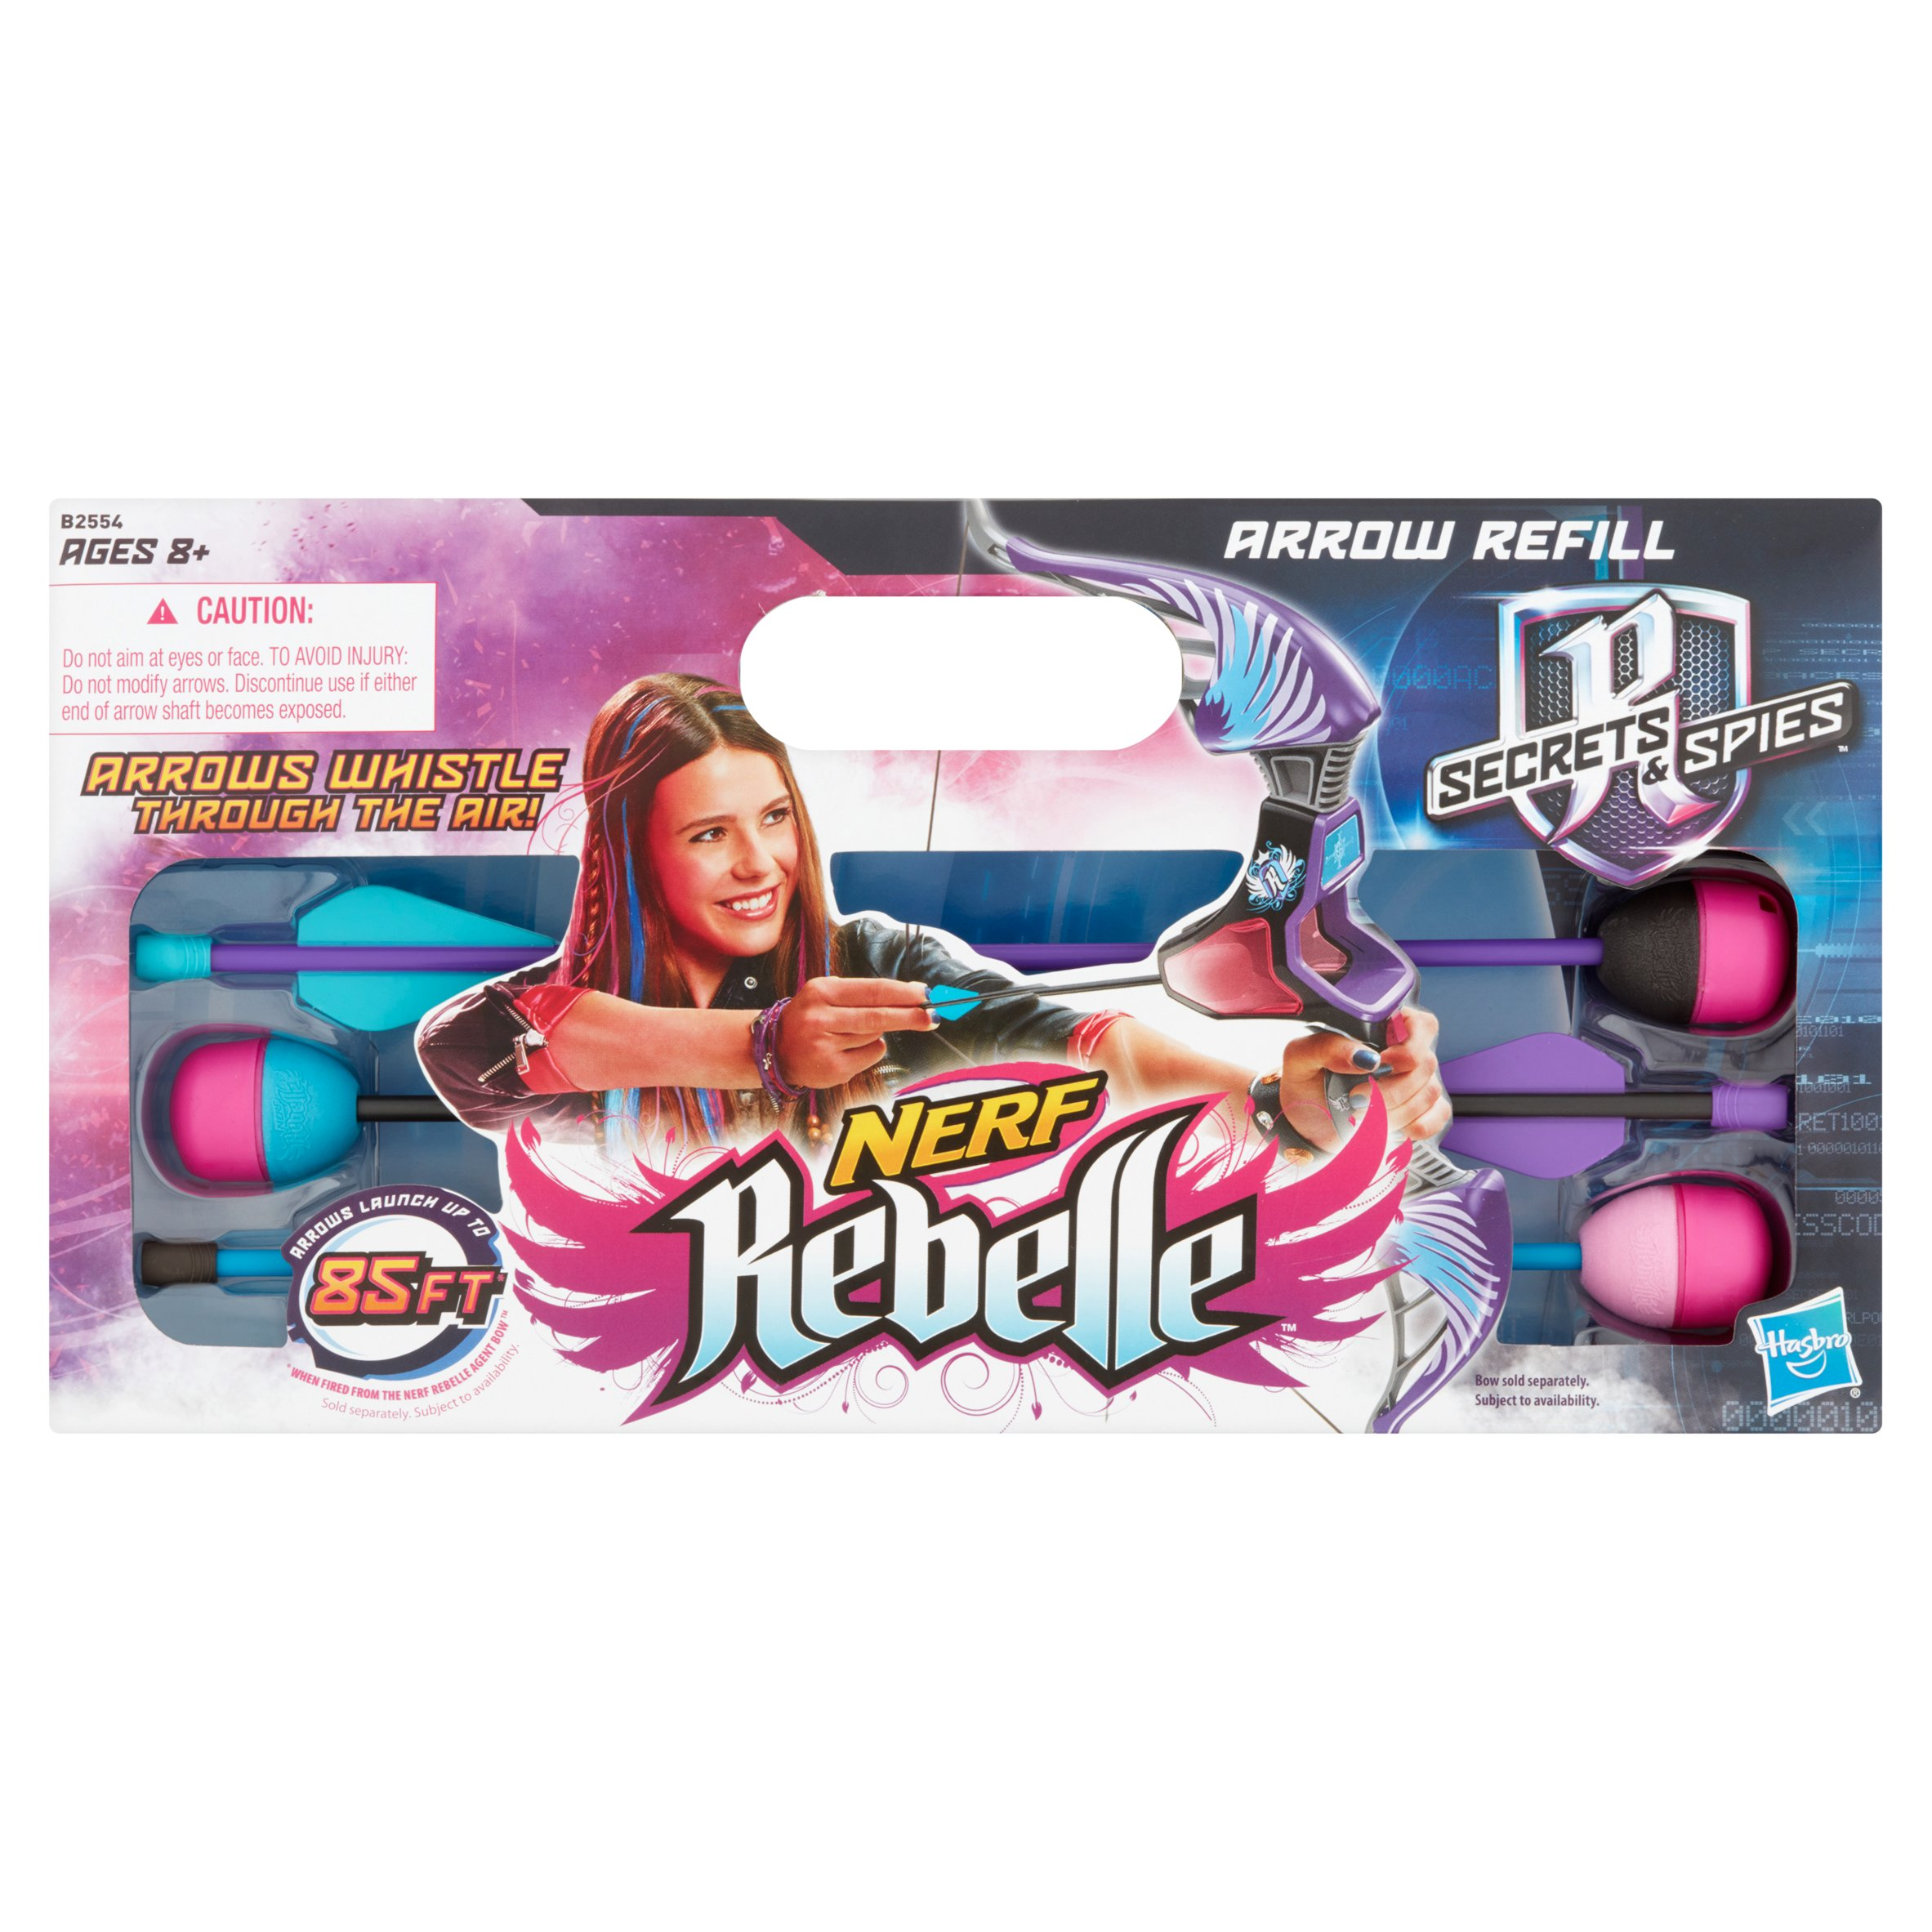 Hasbro Nerf Rebelle Secrets & Spies Arrow Refill Ages 8+